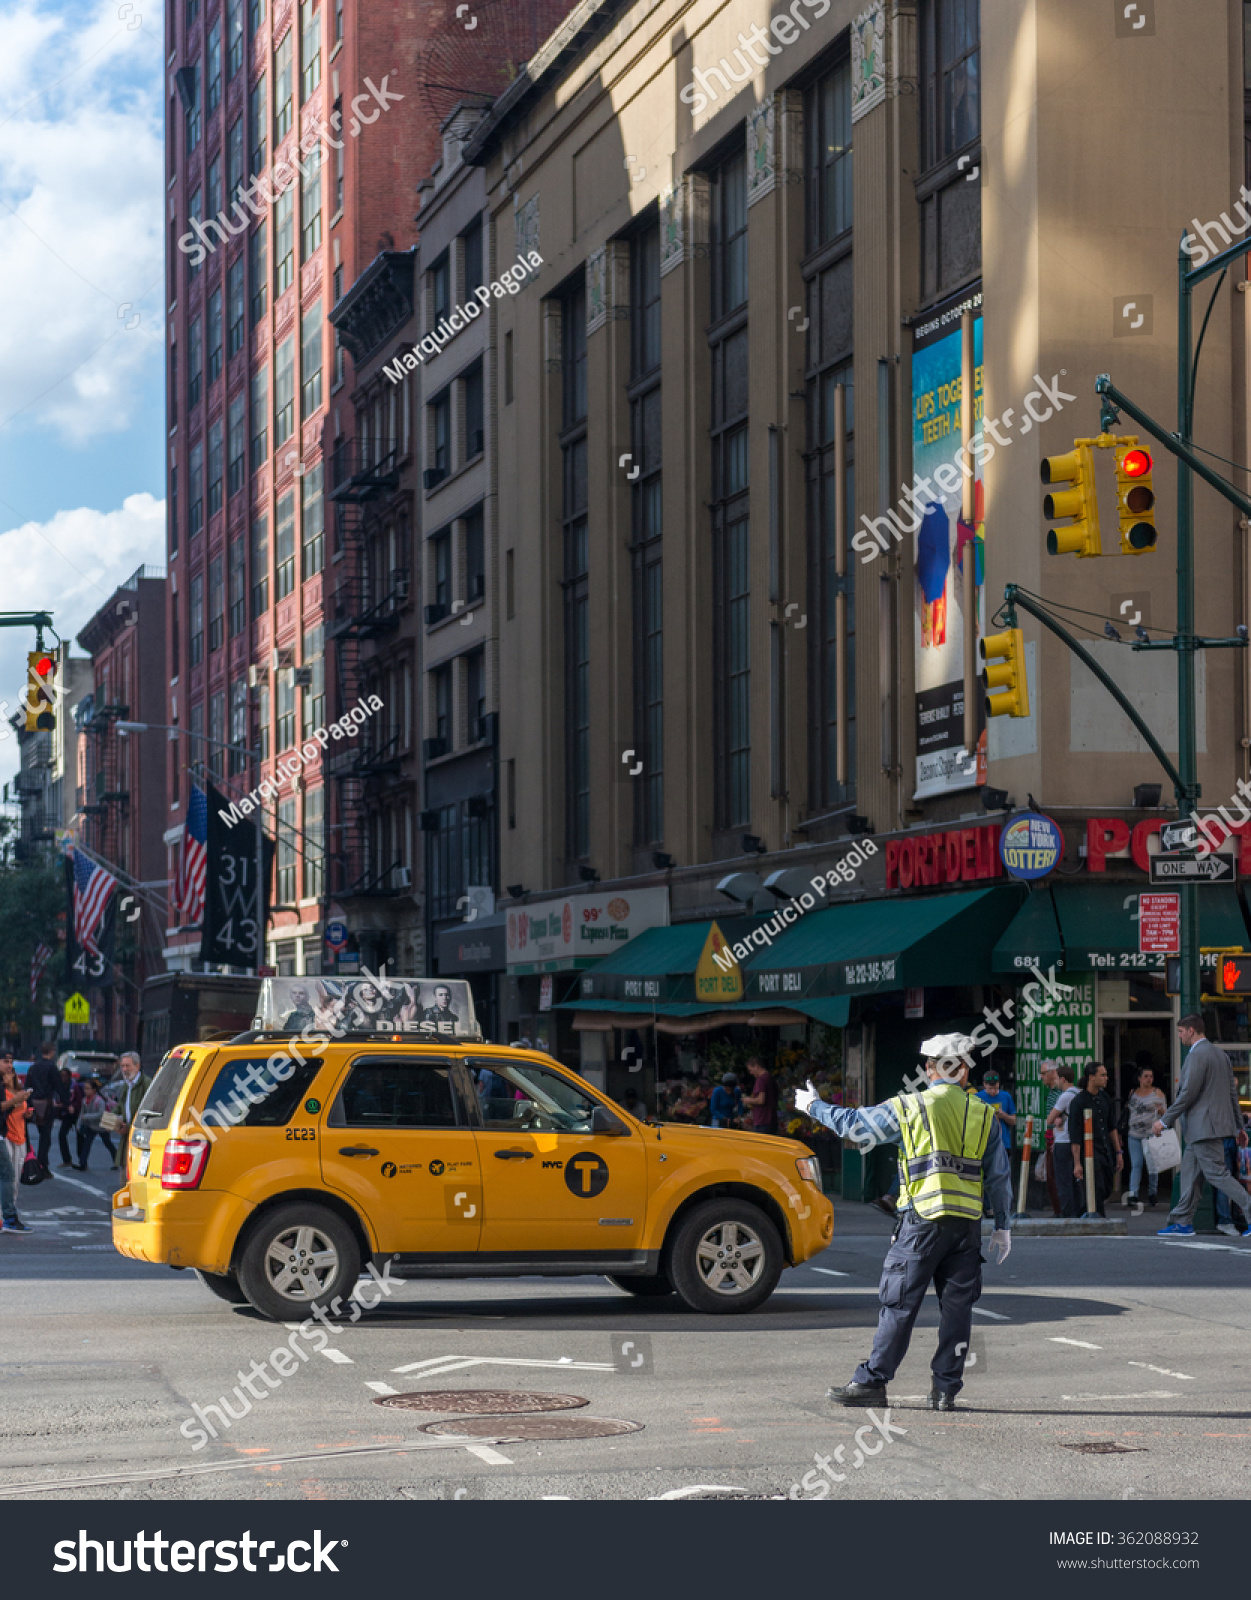 Redirecting: October 16th, 2014: A Traffic